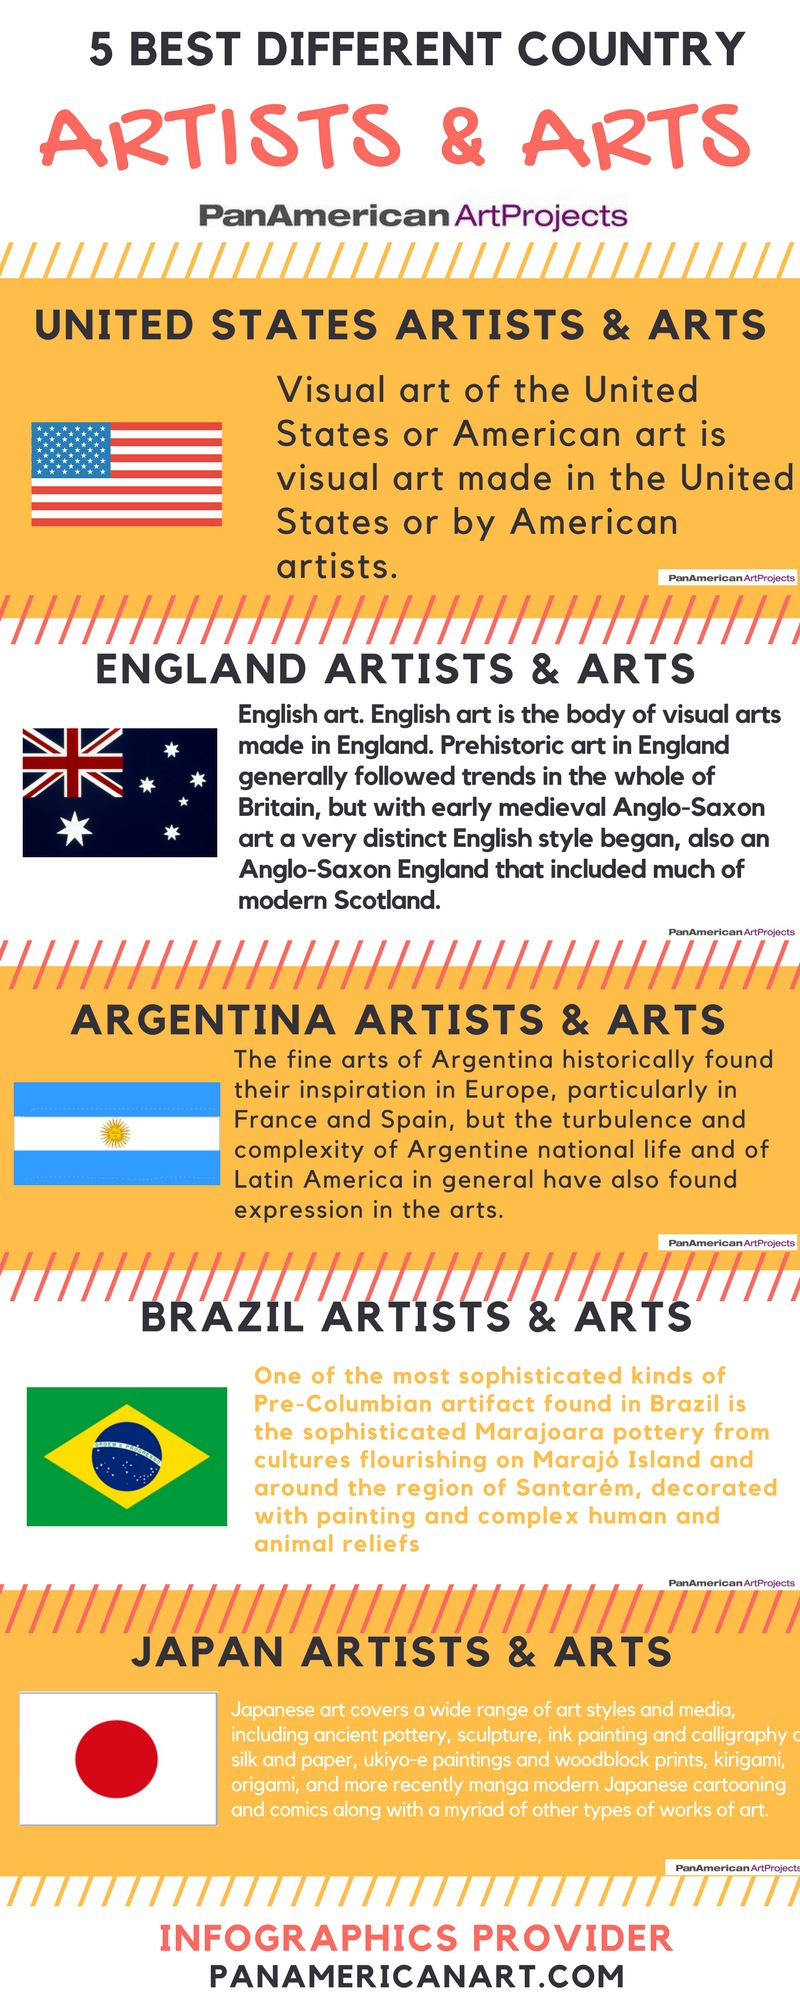 5 Best Different Countries Artist & Arts | Pan American Art Projects by panamericanart